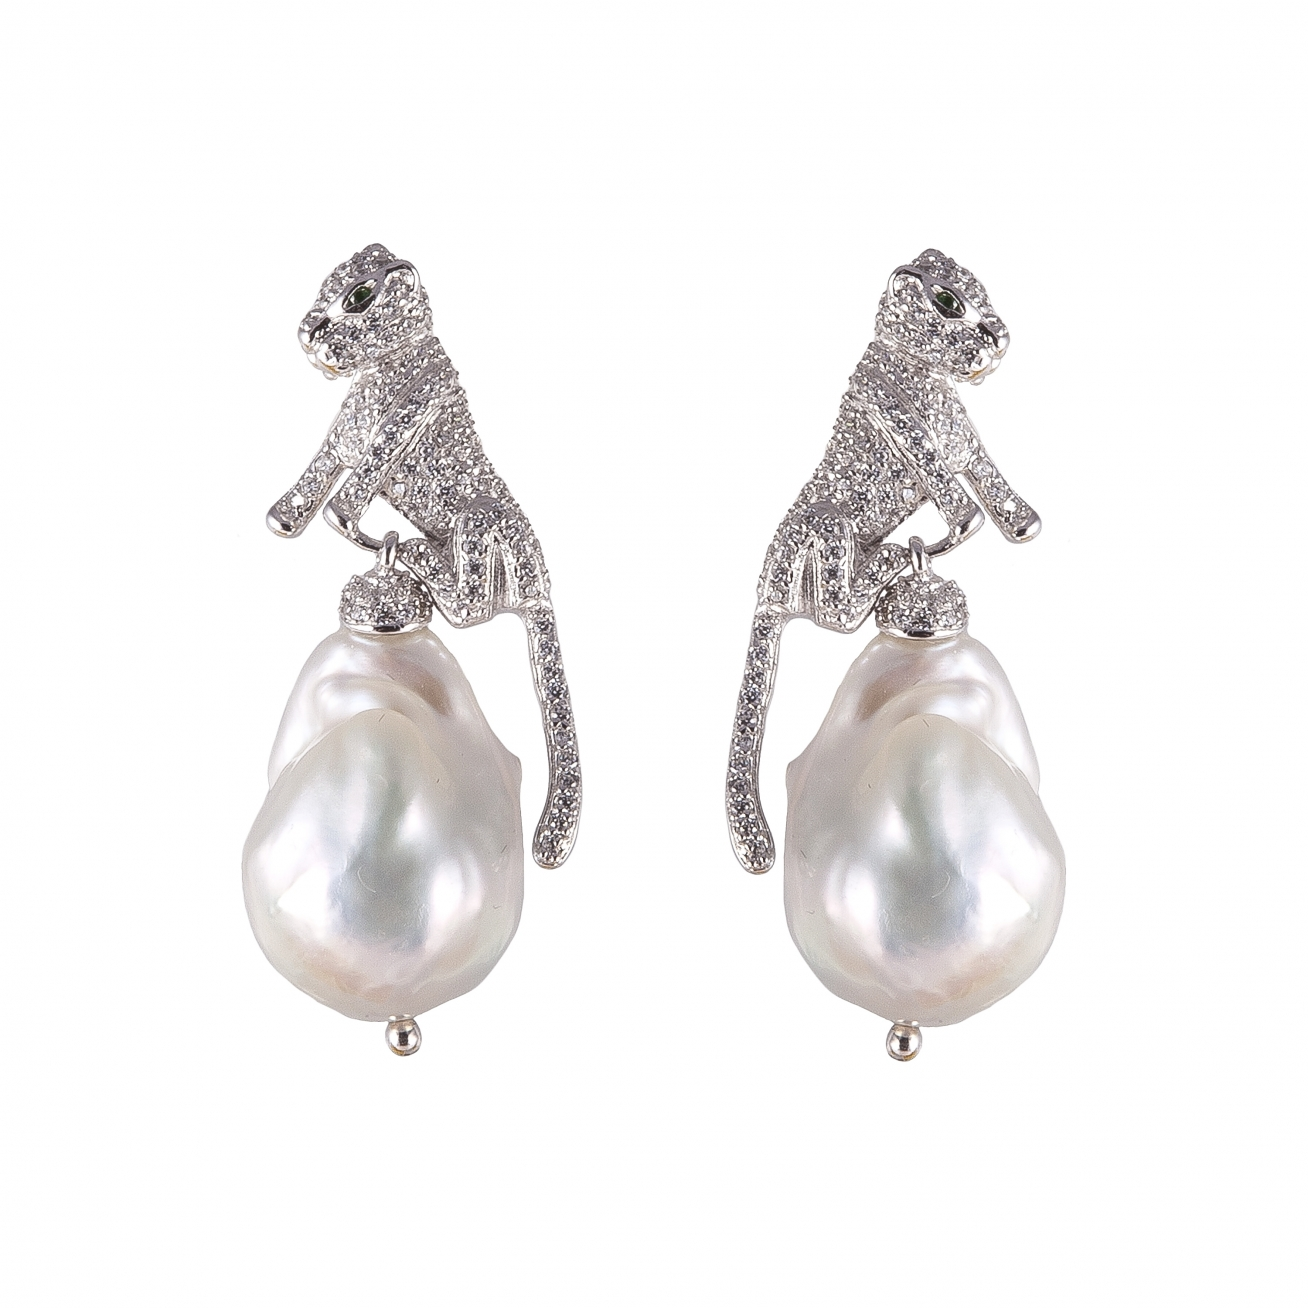 Panthers With Baroque Pearls Earrings